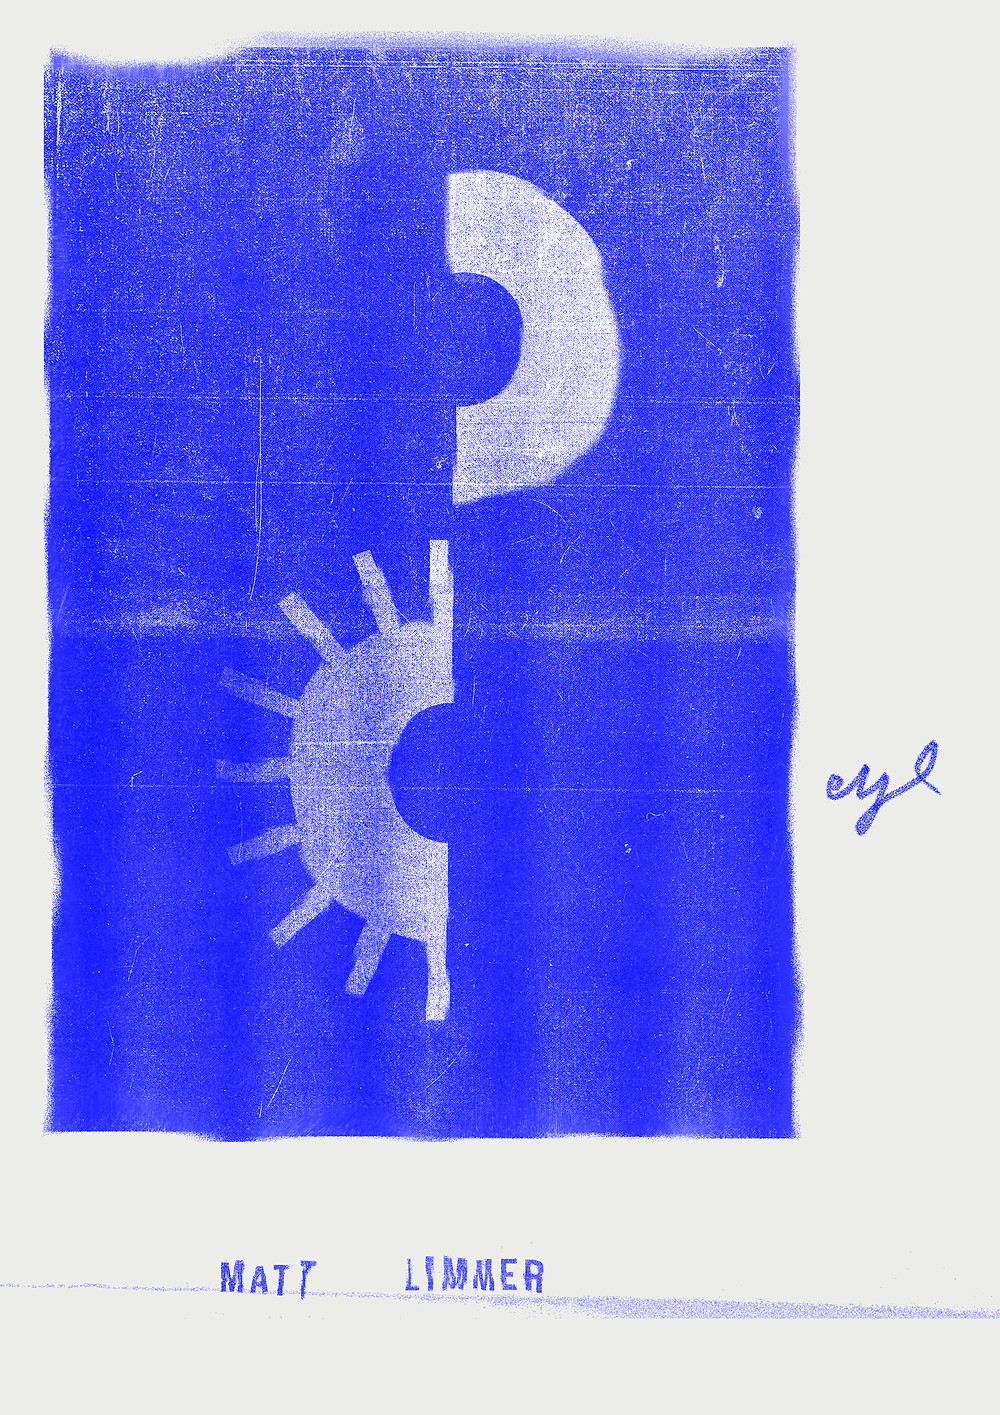 Blue poster of an illustration of an eye split in two. With text saying EYE and Matt Limmer.